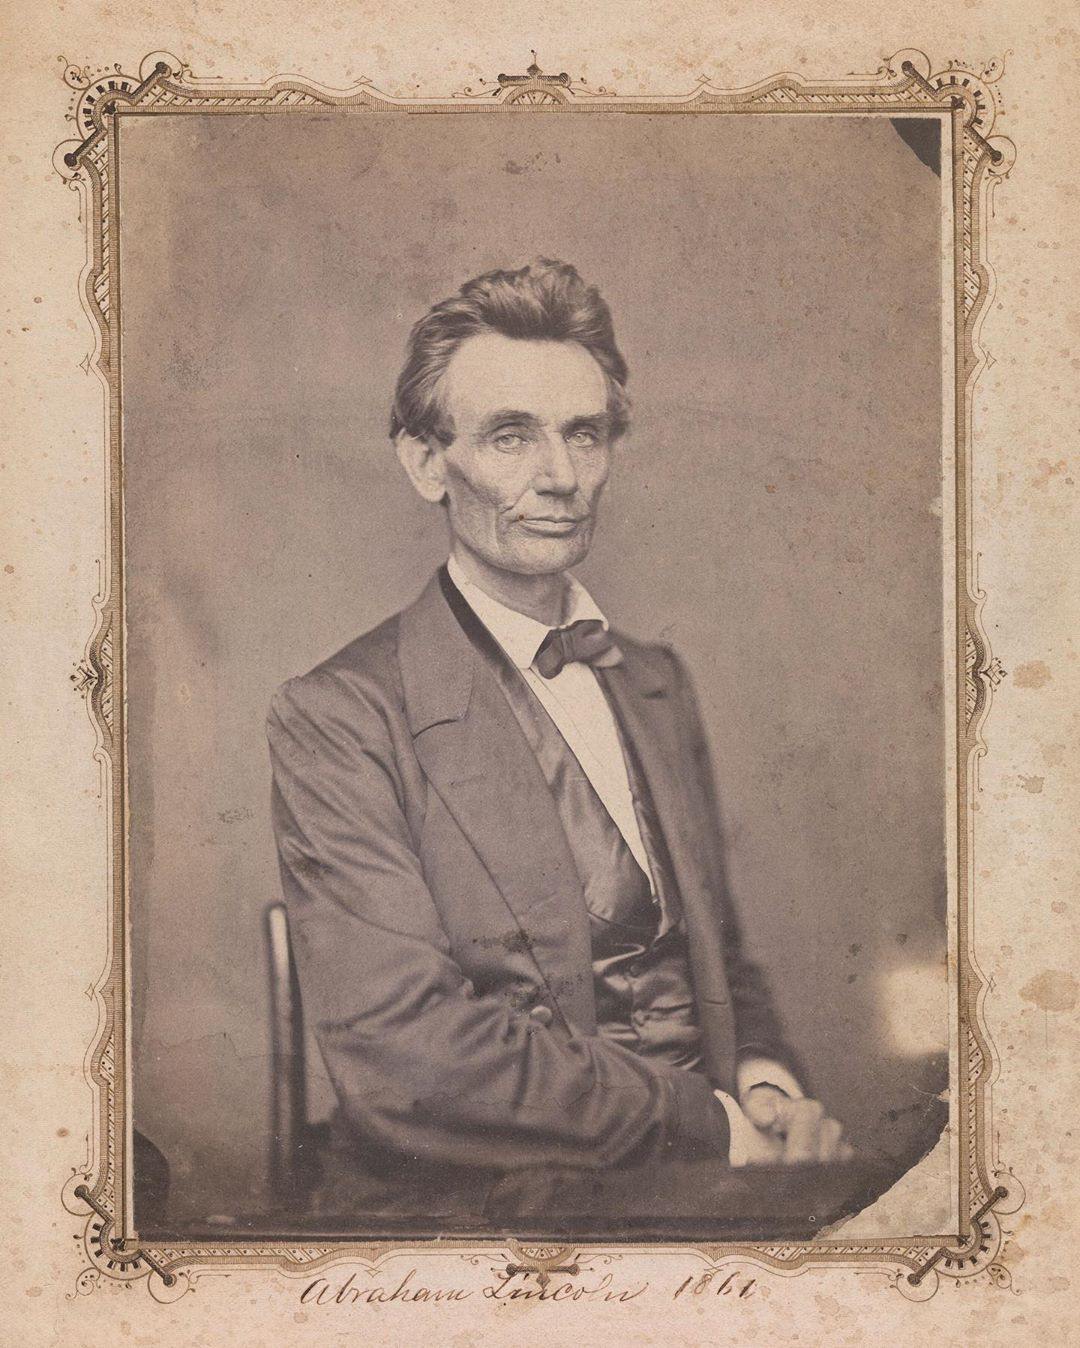 Of The More Than 100 Known Photographs Of Abrahamlincoln Born